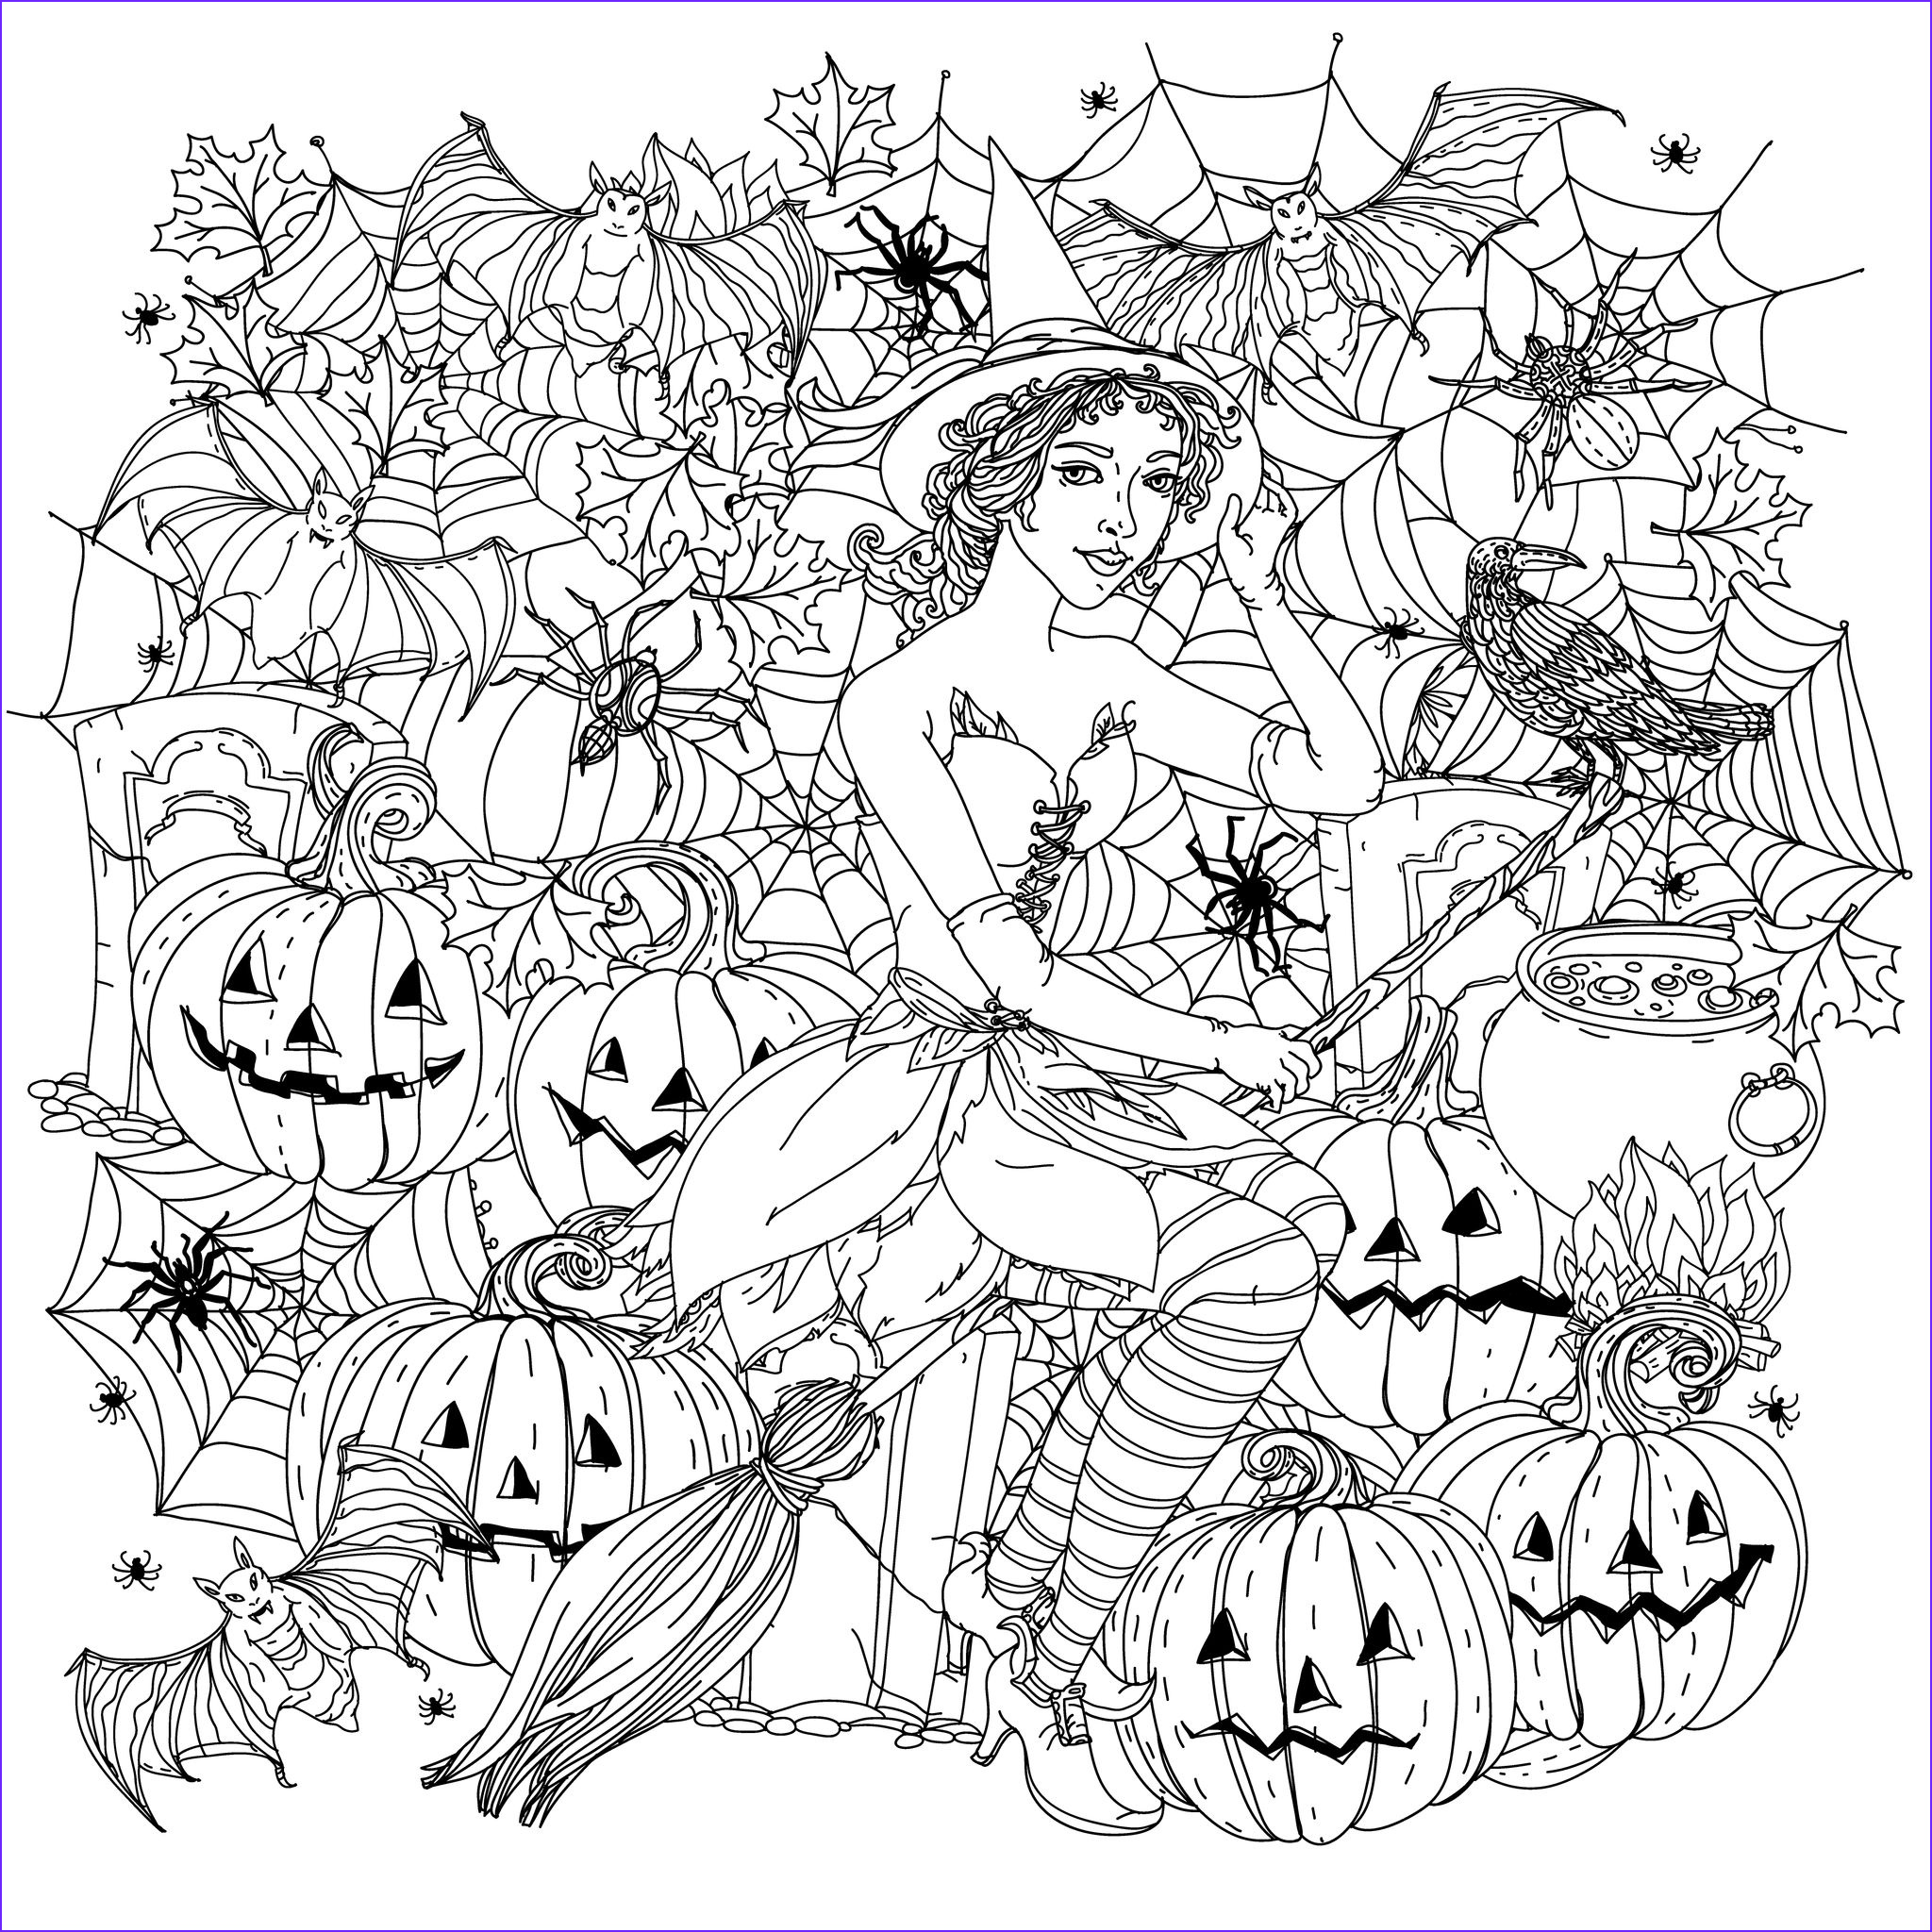 halloween adult coloring pages image=events halloween coloring halloween witch with pumpkins by mashabr 1